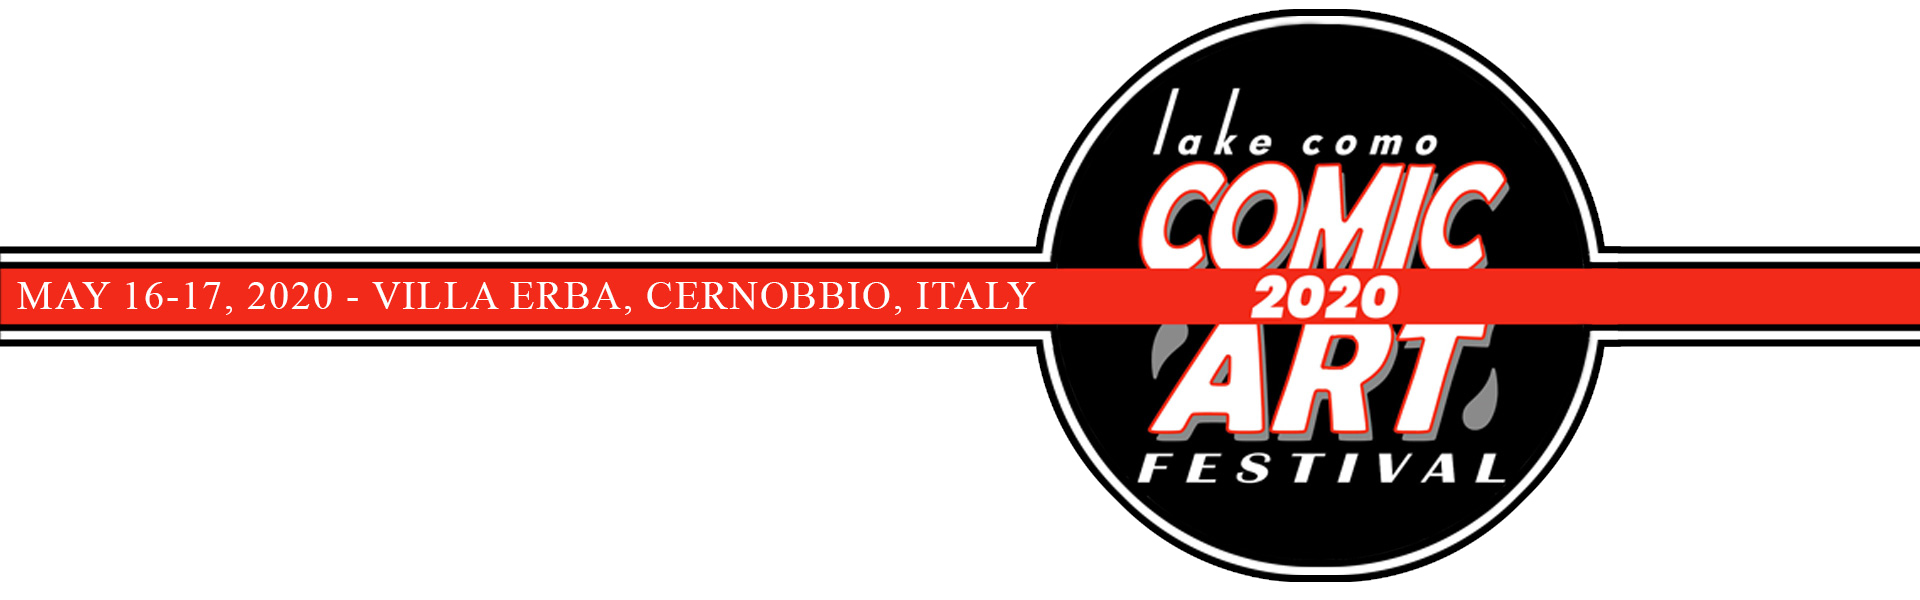 Lake Como Comic Art Festival Logo